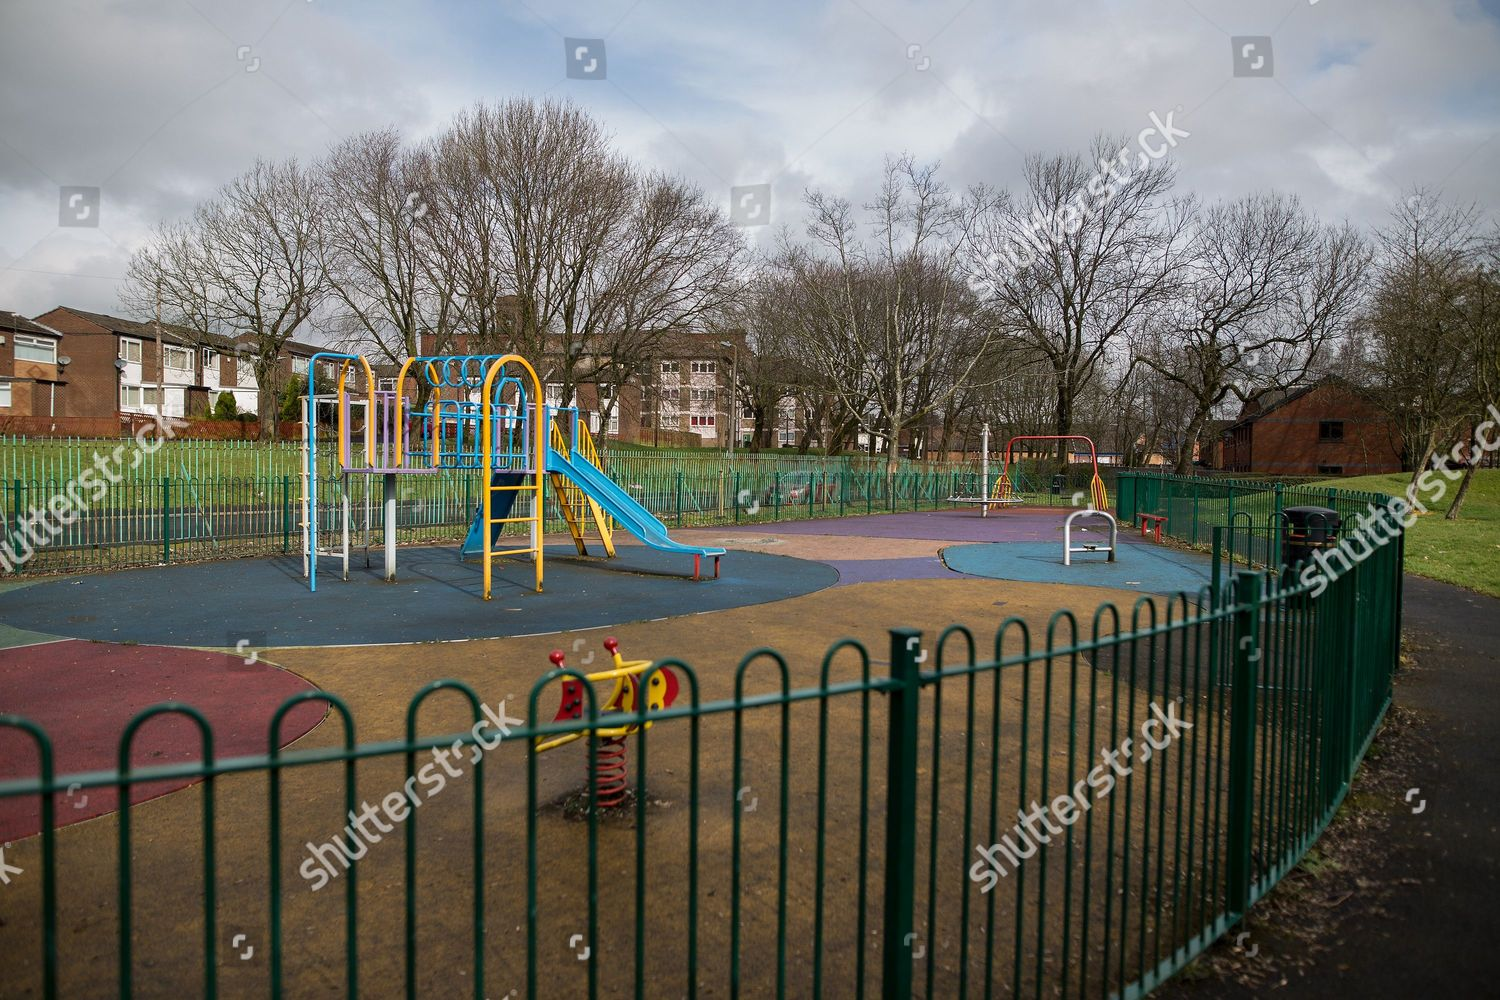 In Britains Playgrounds Bringing In >> Scene Thomasson Park Playground Halliwell Area Bolton